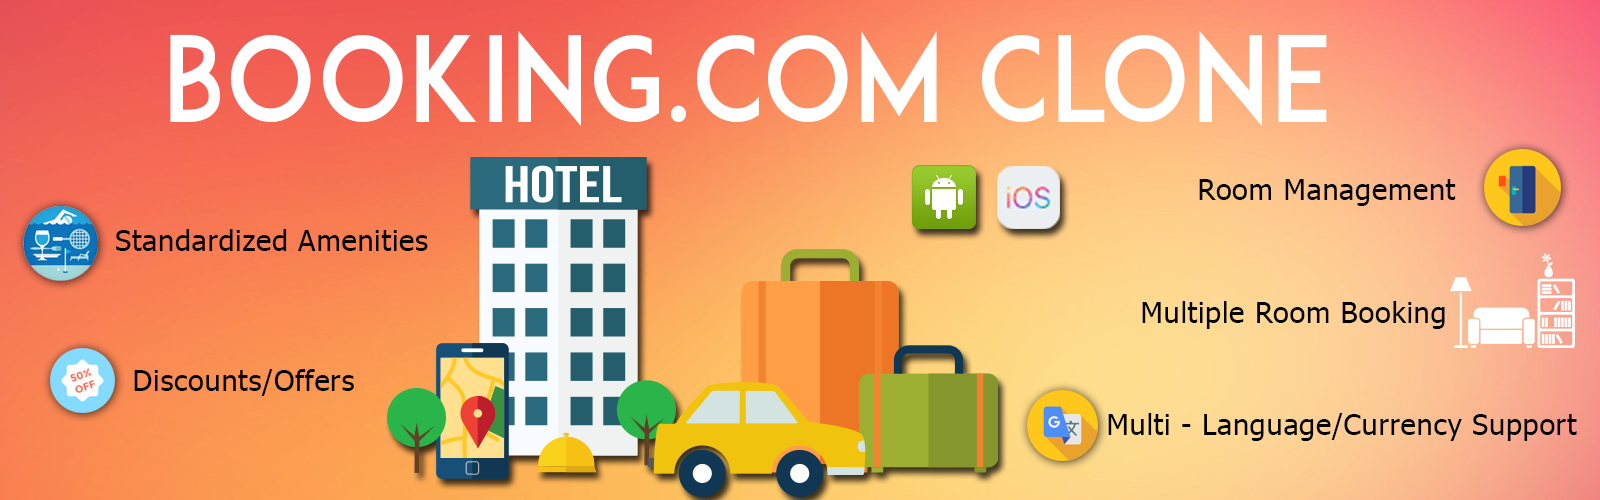 doditsolutions-booking.com-clone-banner